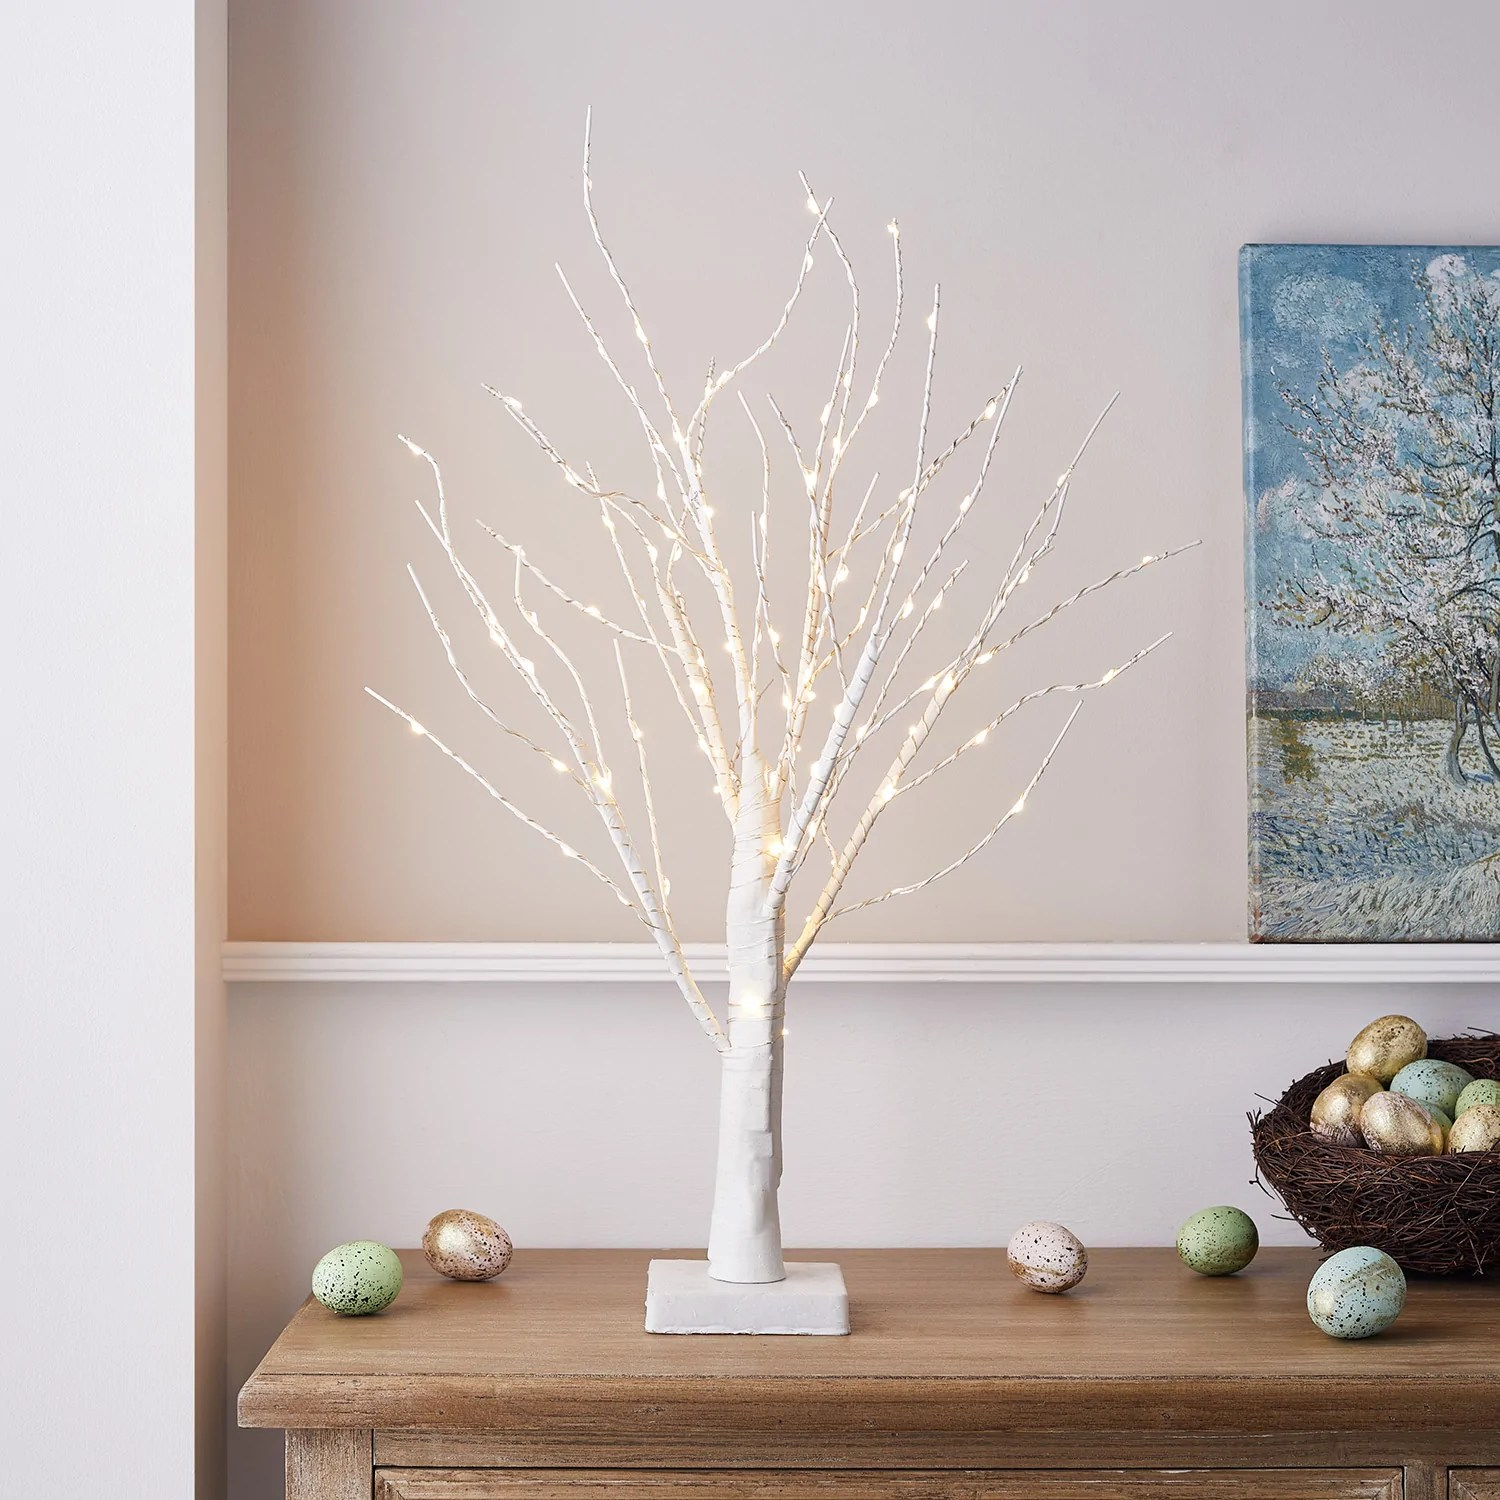 Holz Ast Deko 65cm Micro Led Deko Baum Weiß | Lights4fun.de